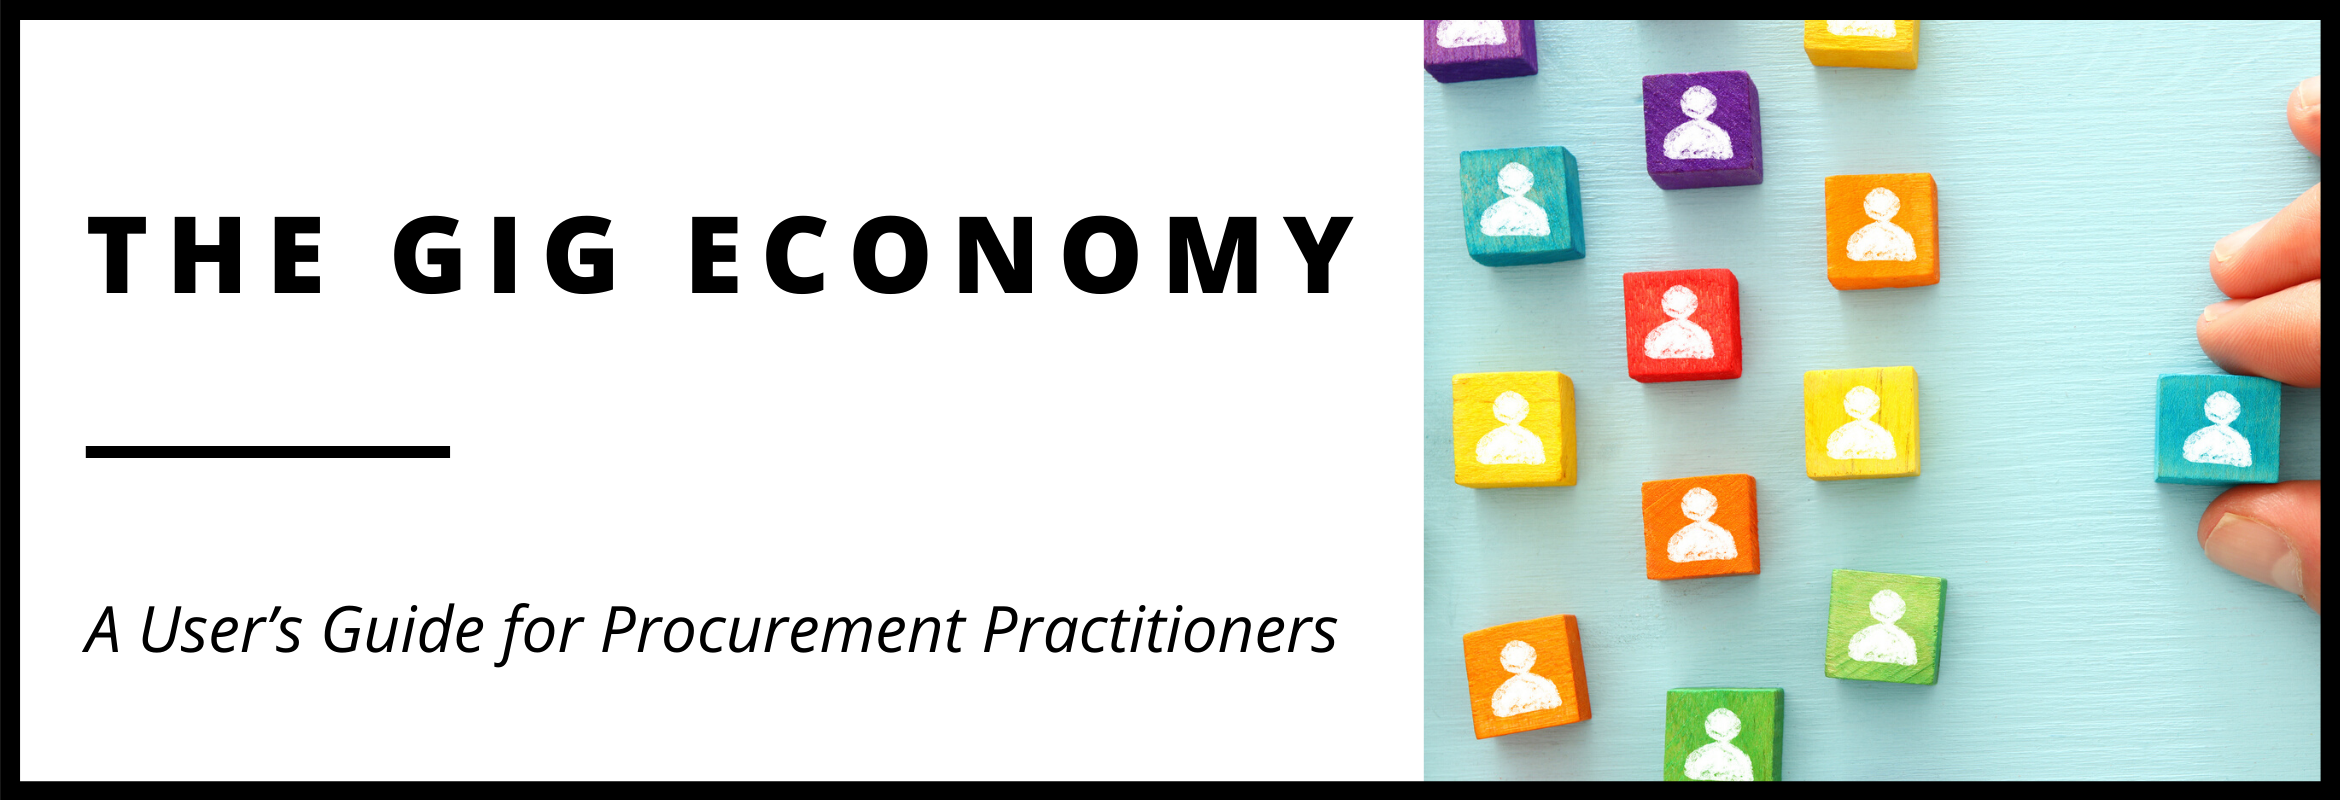 How procurement can make the gig economy work for them.